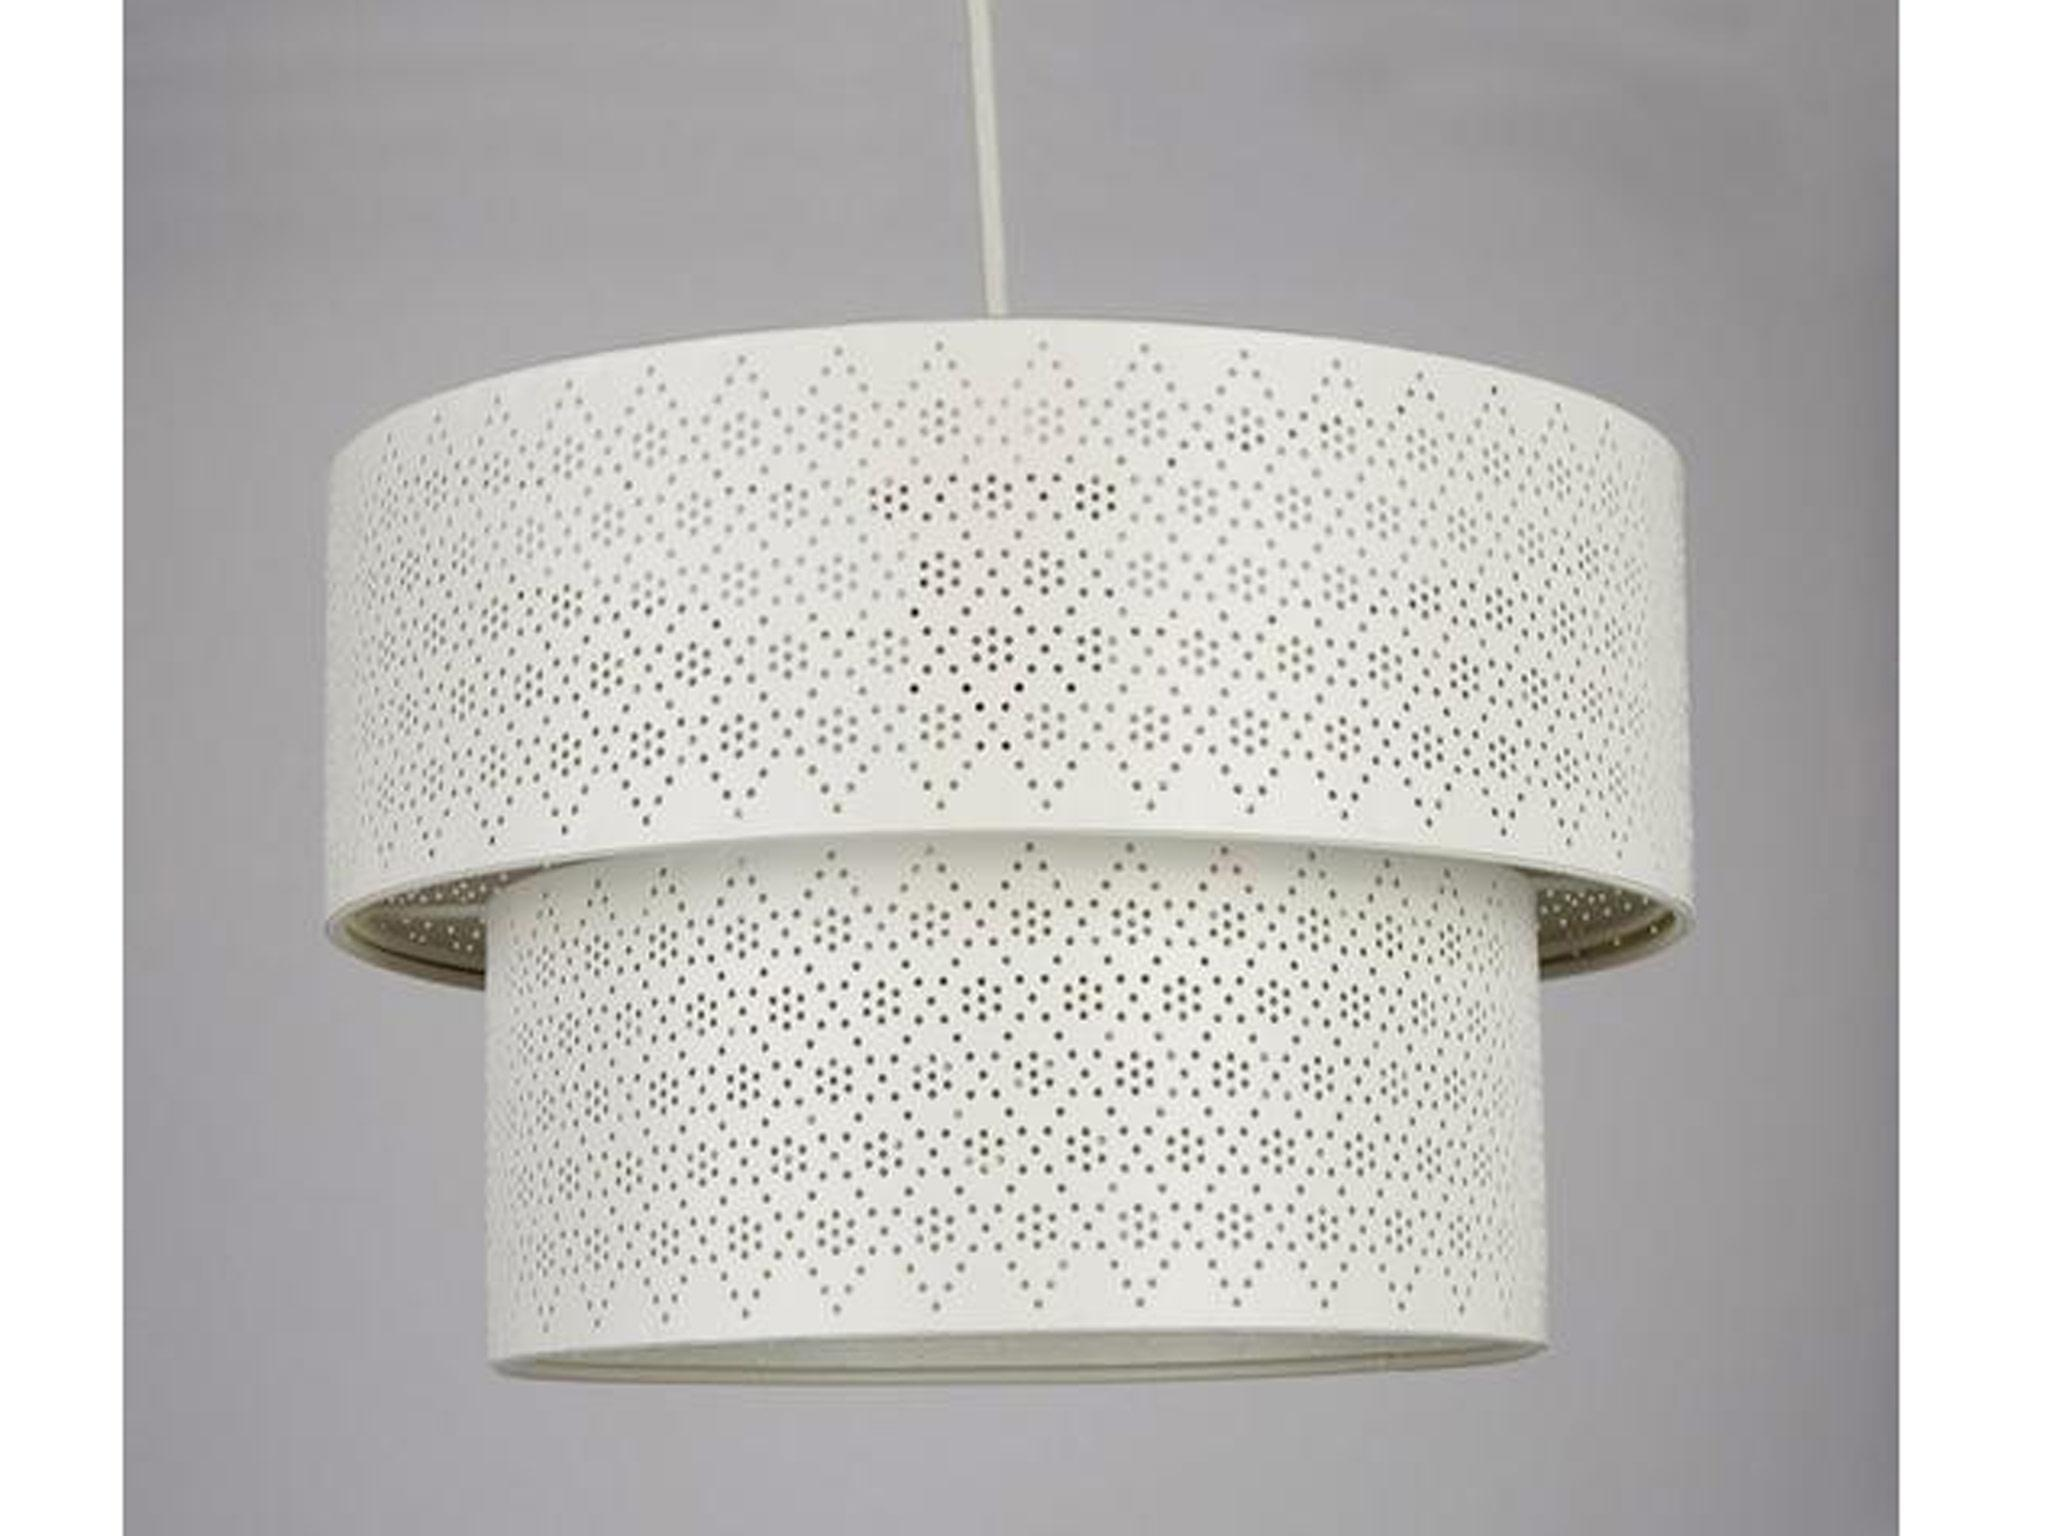 10 Best Lampshades The Independent Electrical Supply Cage Trouble Light Industrial Wire Lamp Shade Very Metal Fretwork Two Tier Drum 2499